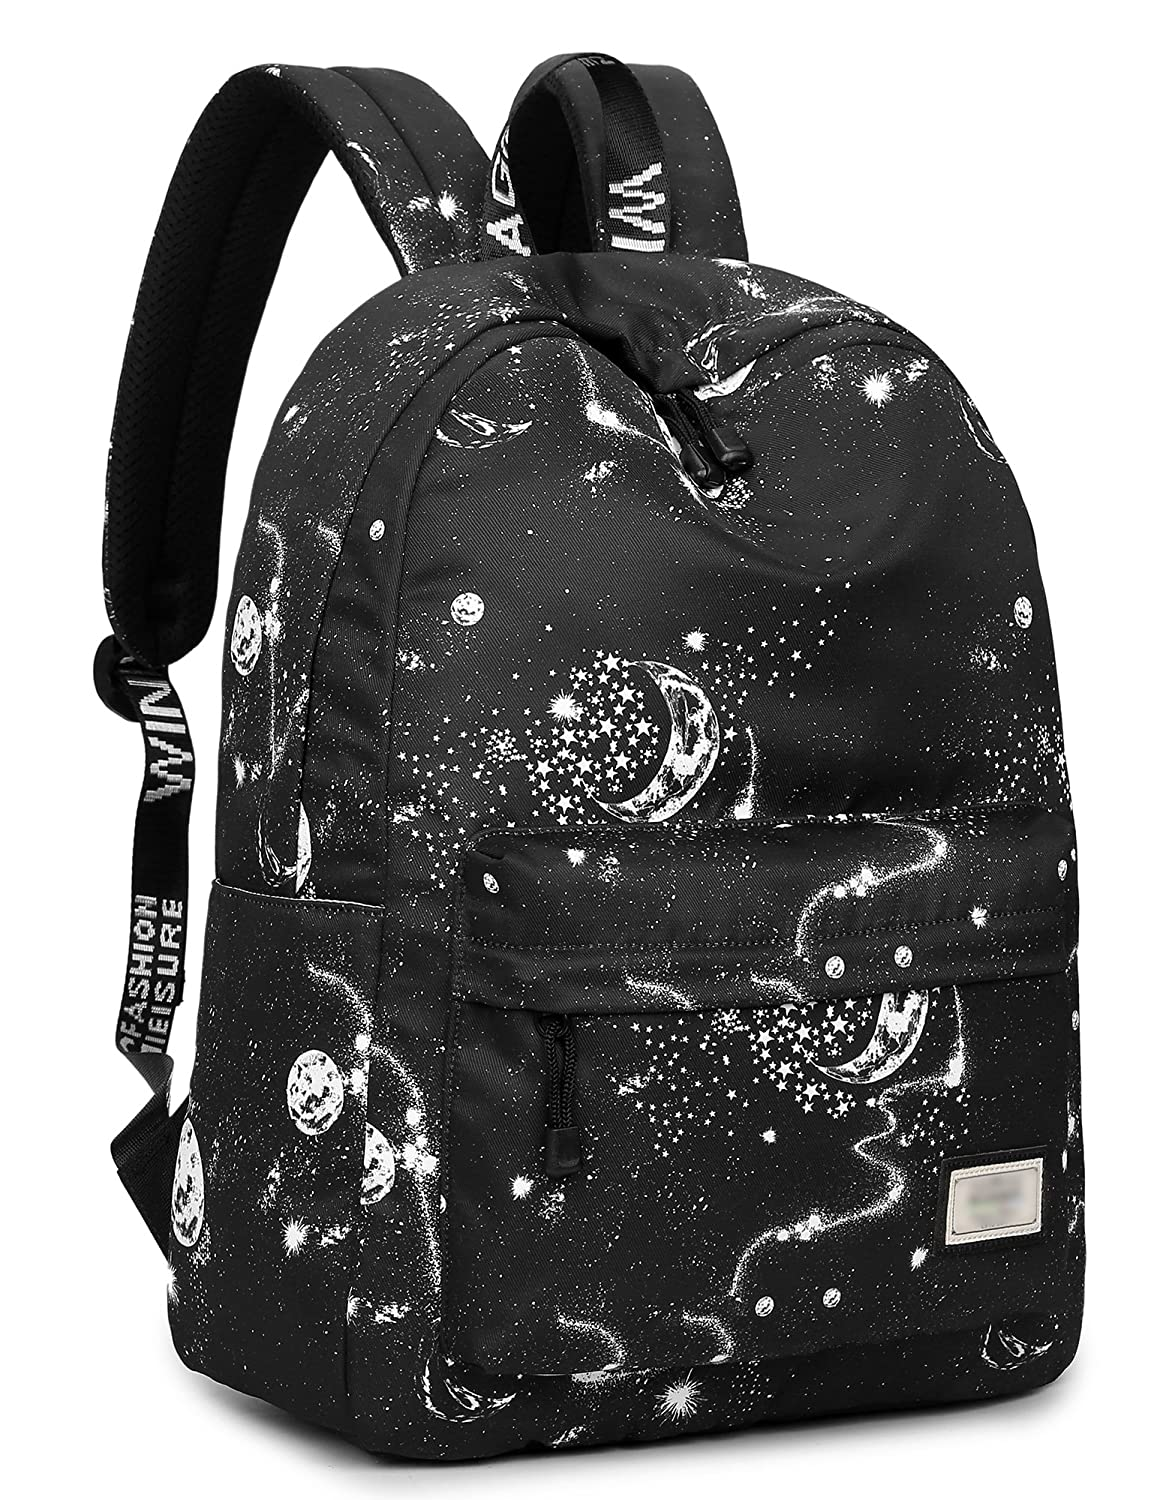 Bookbags for Teens、ユニセックスクラシックLaptopバックパックスクールバッグDaypack by toperin B07214SB87 Blue[905] Blue[905]